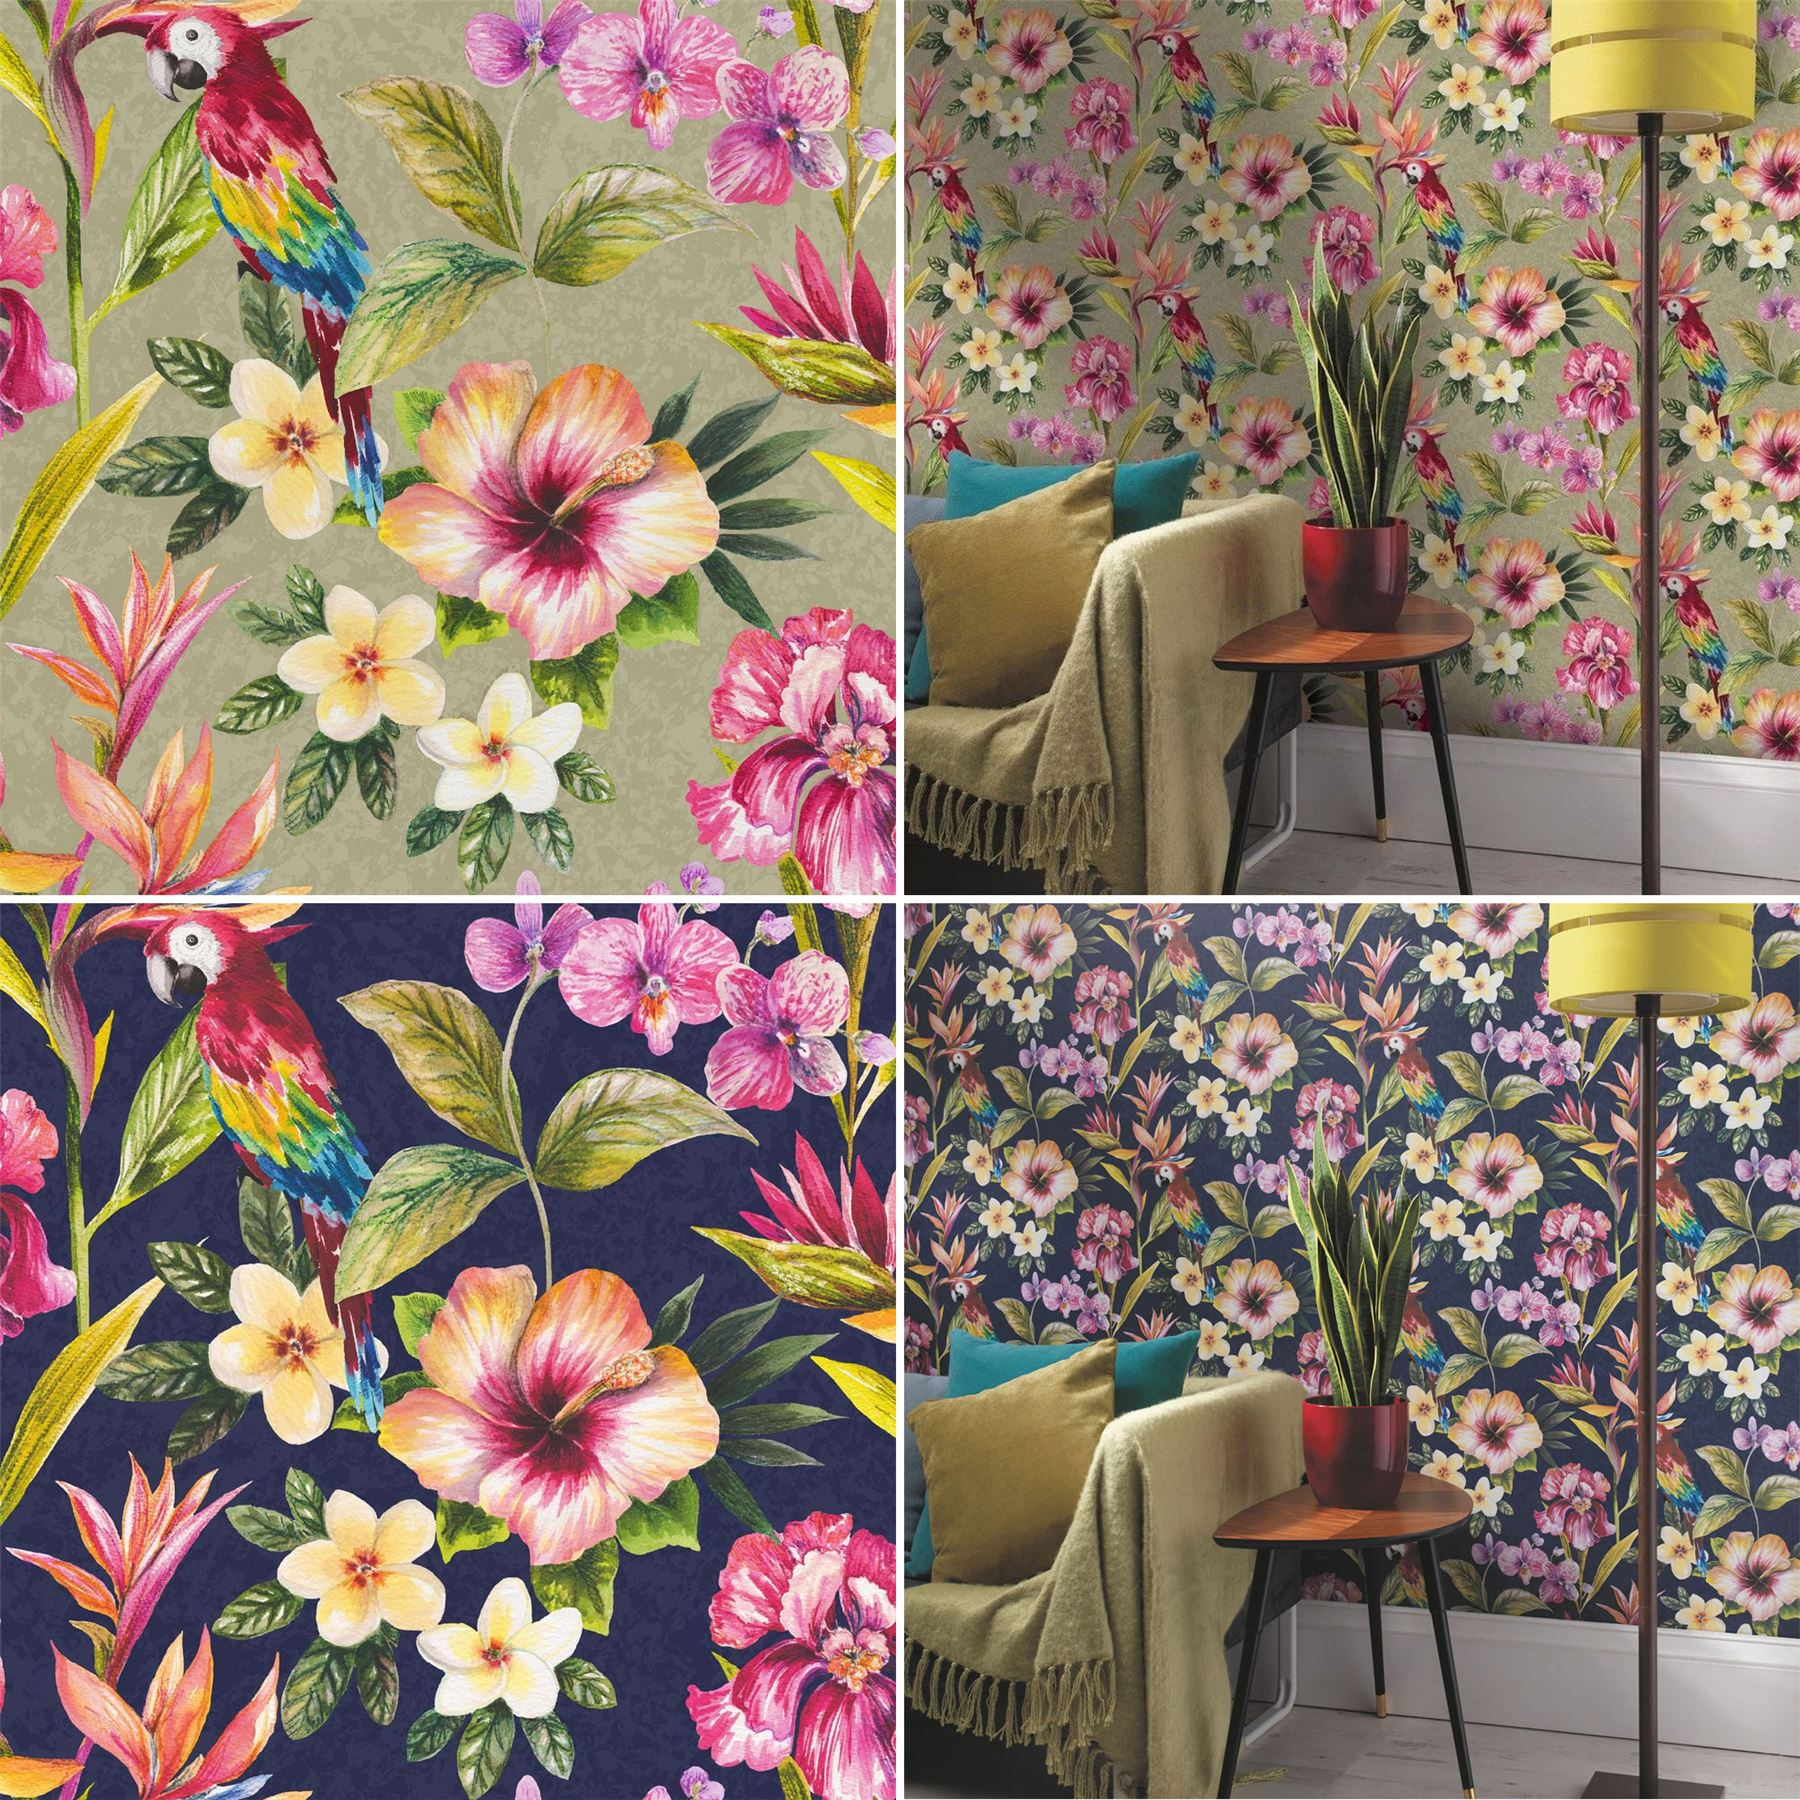 Tropical Exotic Wallpaper Bird Of Paradise Flowers Floral Holden